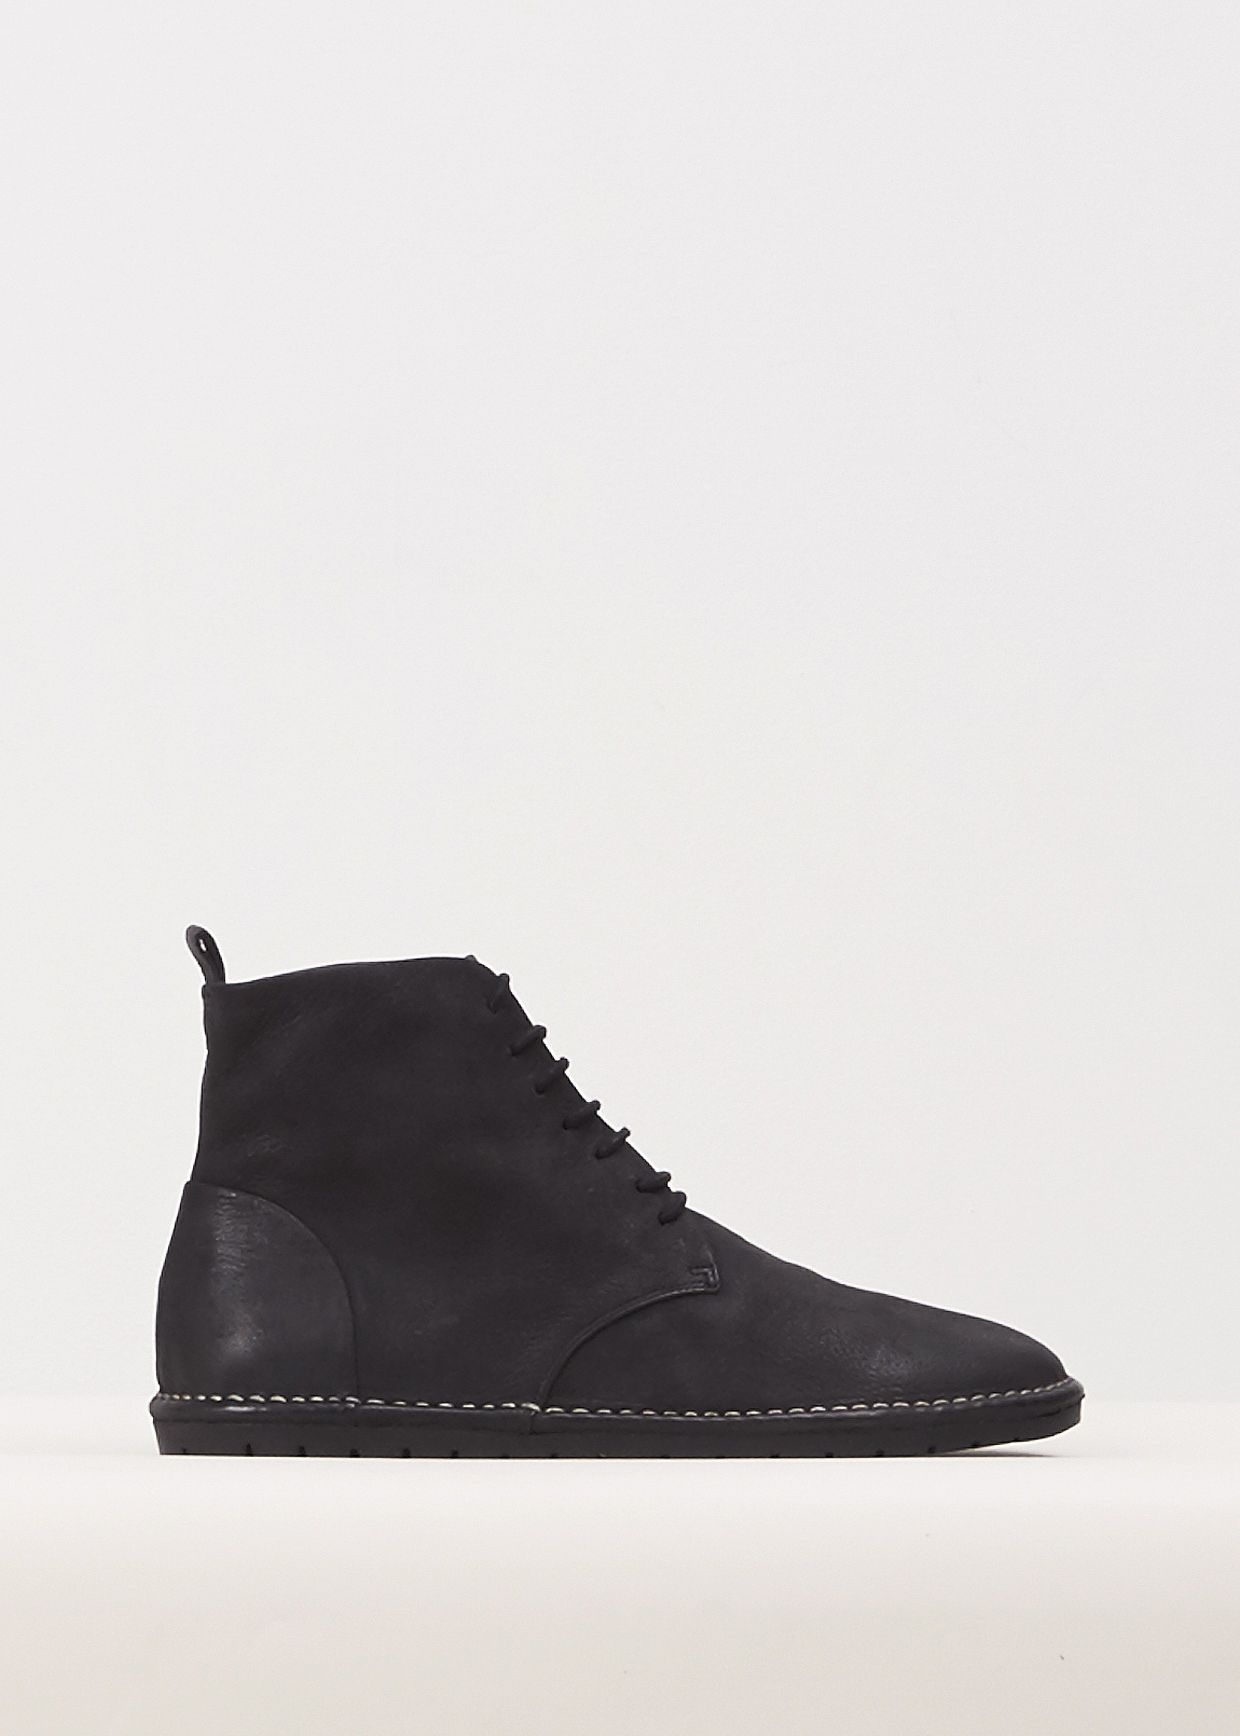 Totokaelo MAN - Marsell Black Sancrispa Field Boot